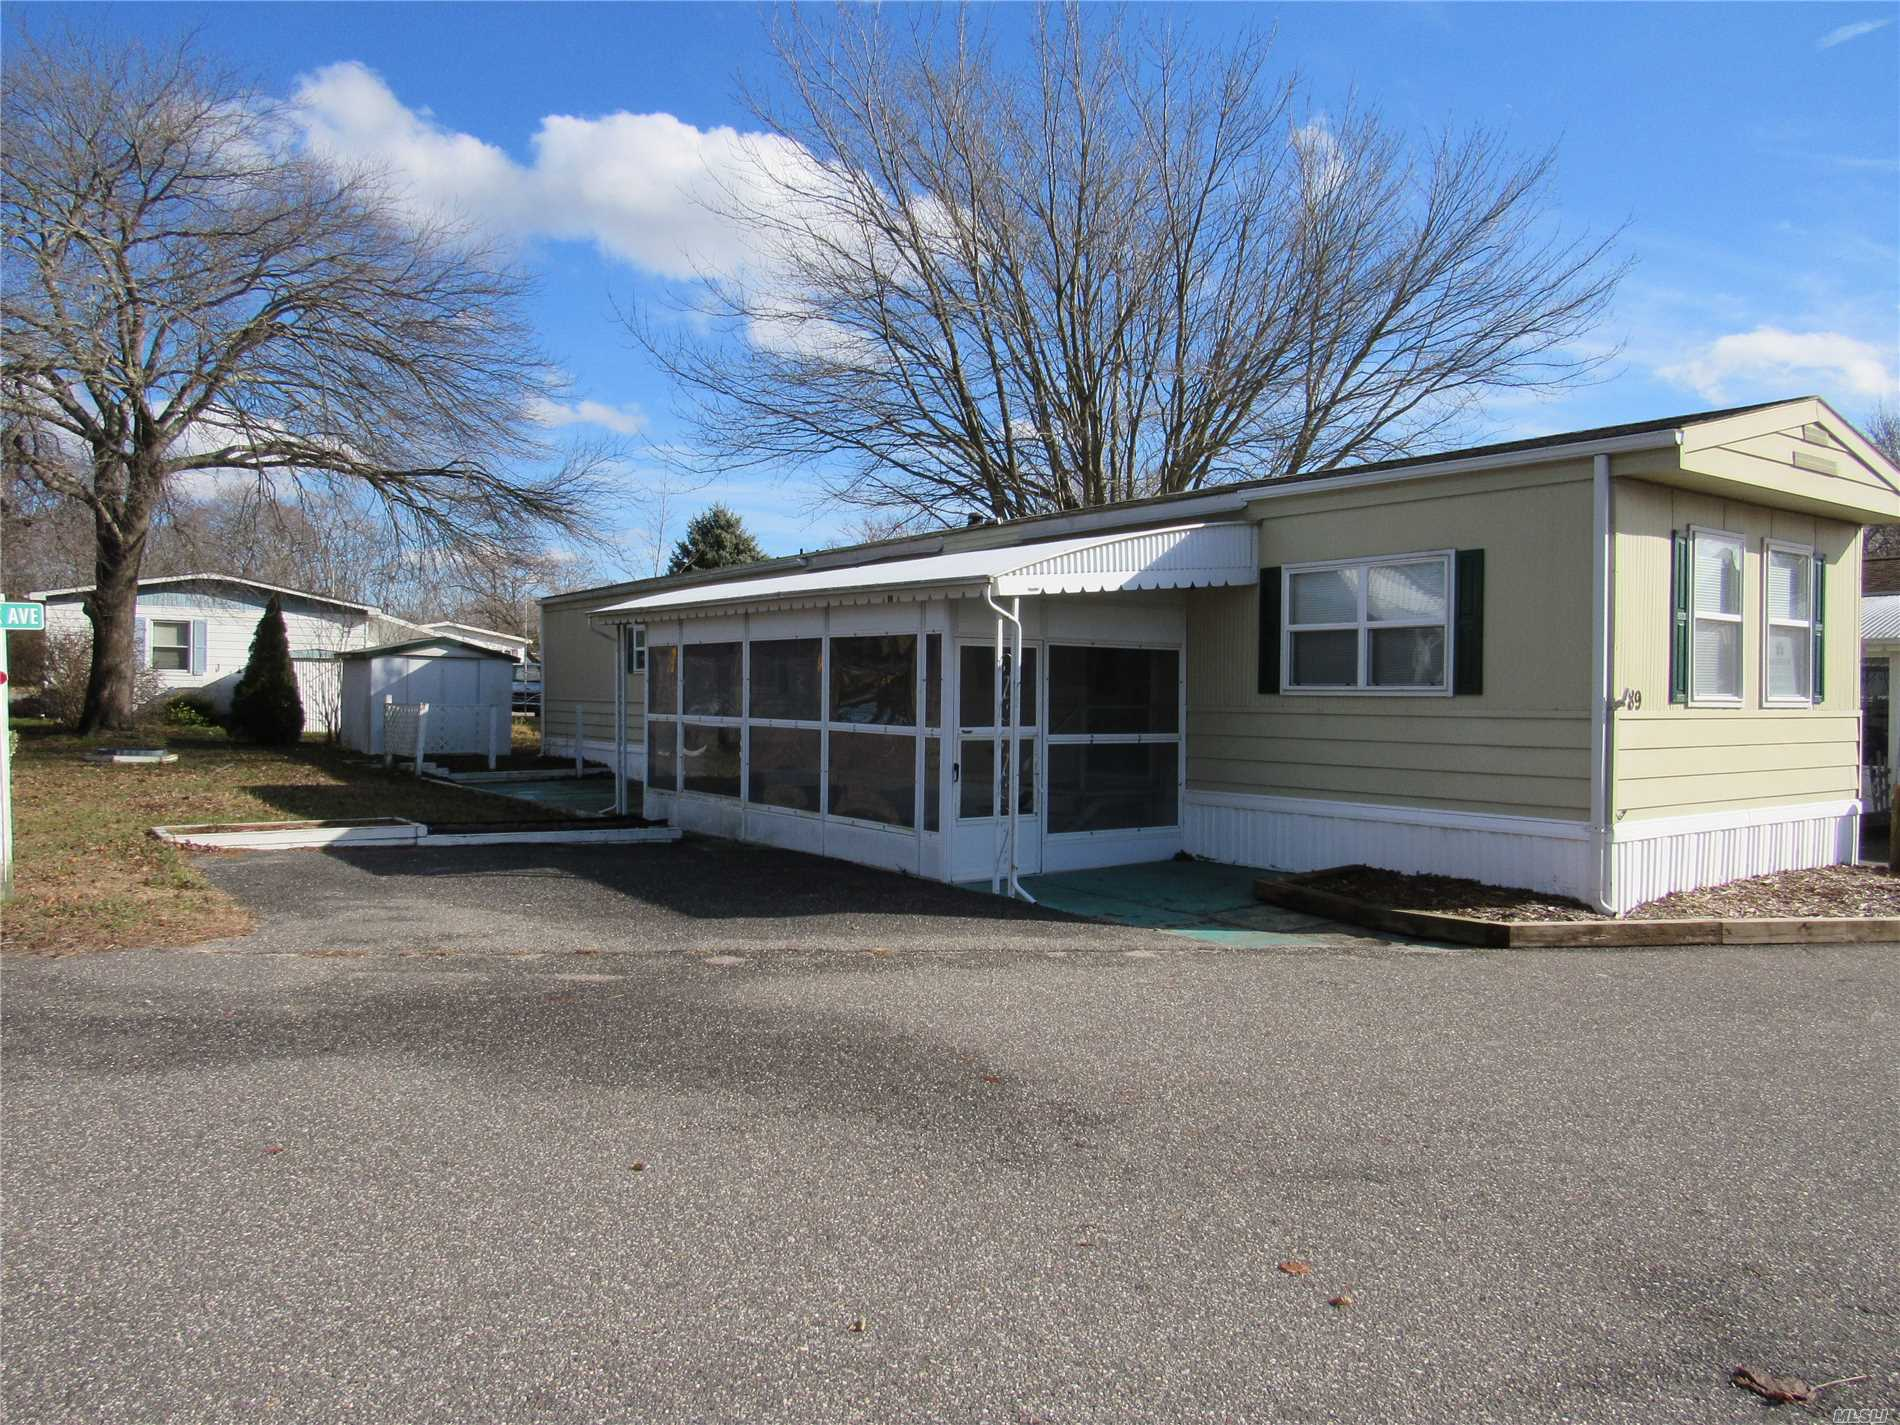 Very Nice 2 Bedrooms, 1 Bath Home Very Bright And Well Kept. Corner Property. Park Rent $683.00 Plus Taxes. 55+ Community.